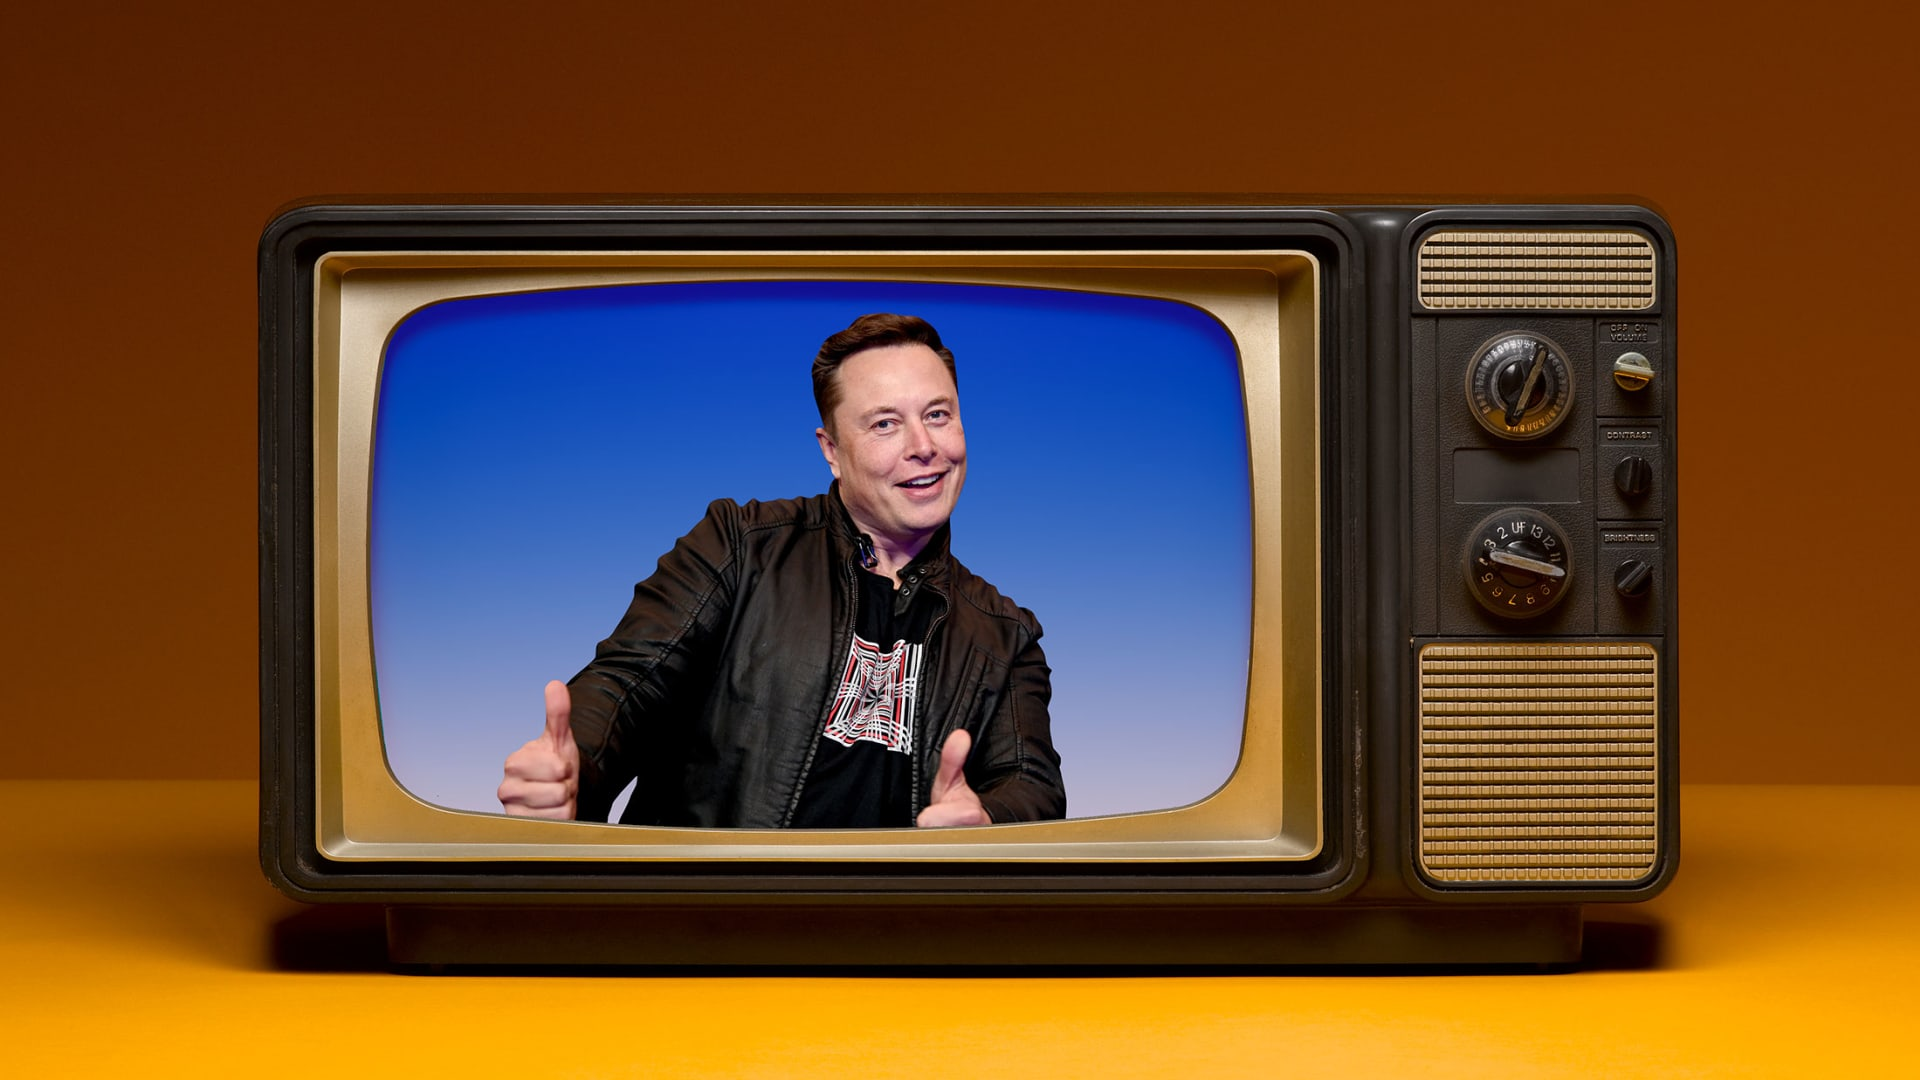 Elon Musk Is Hosting SNL Tonight. Here Are 5 Reasons You Should Watch